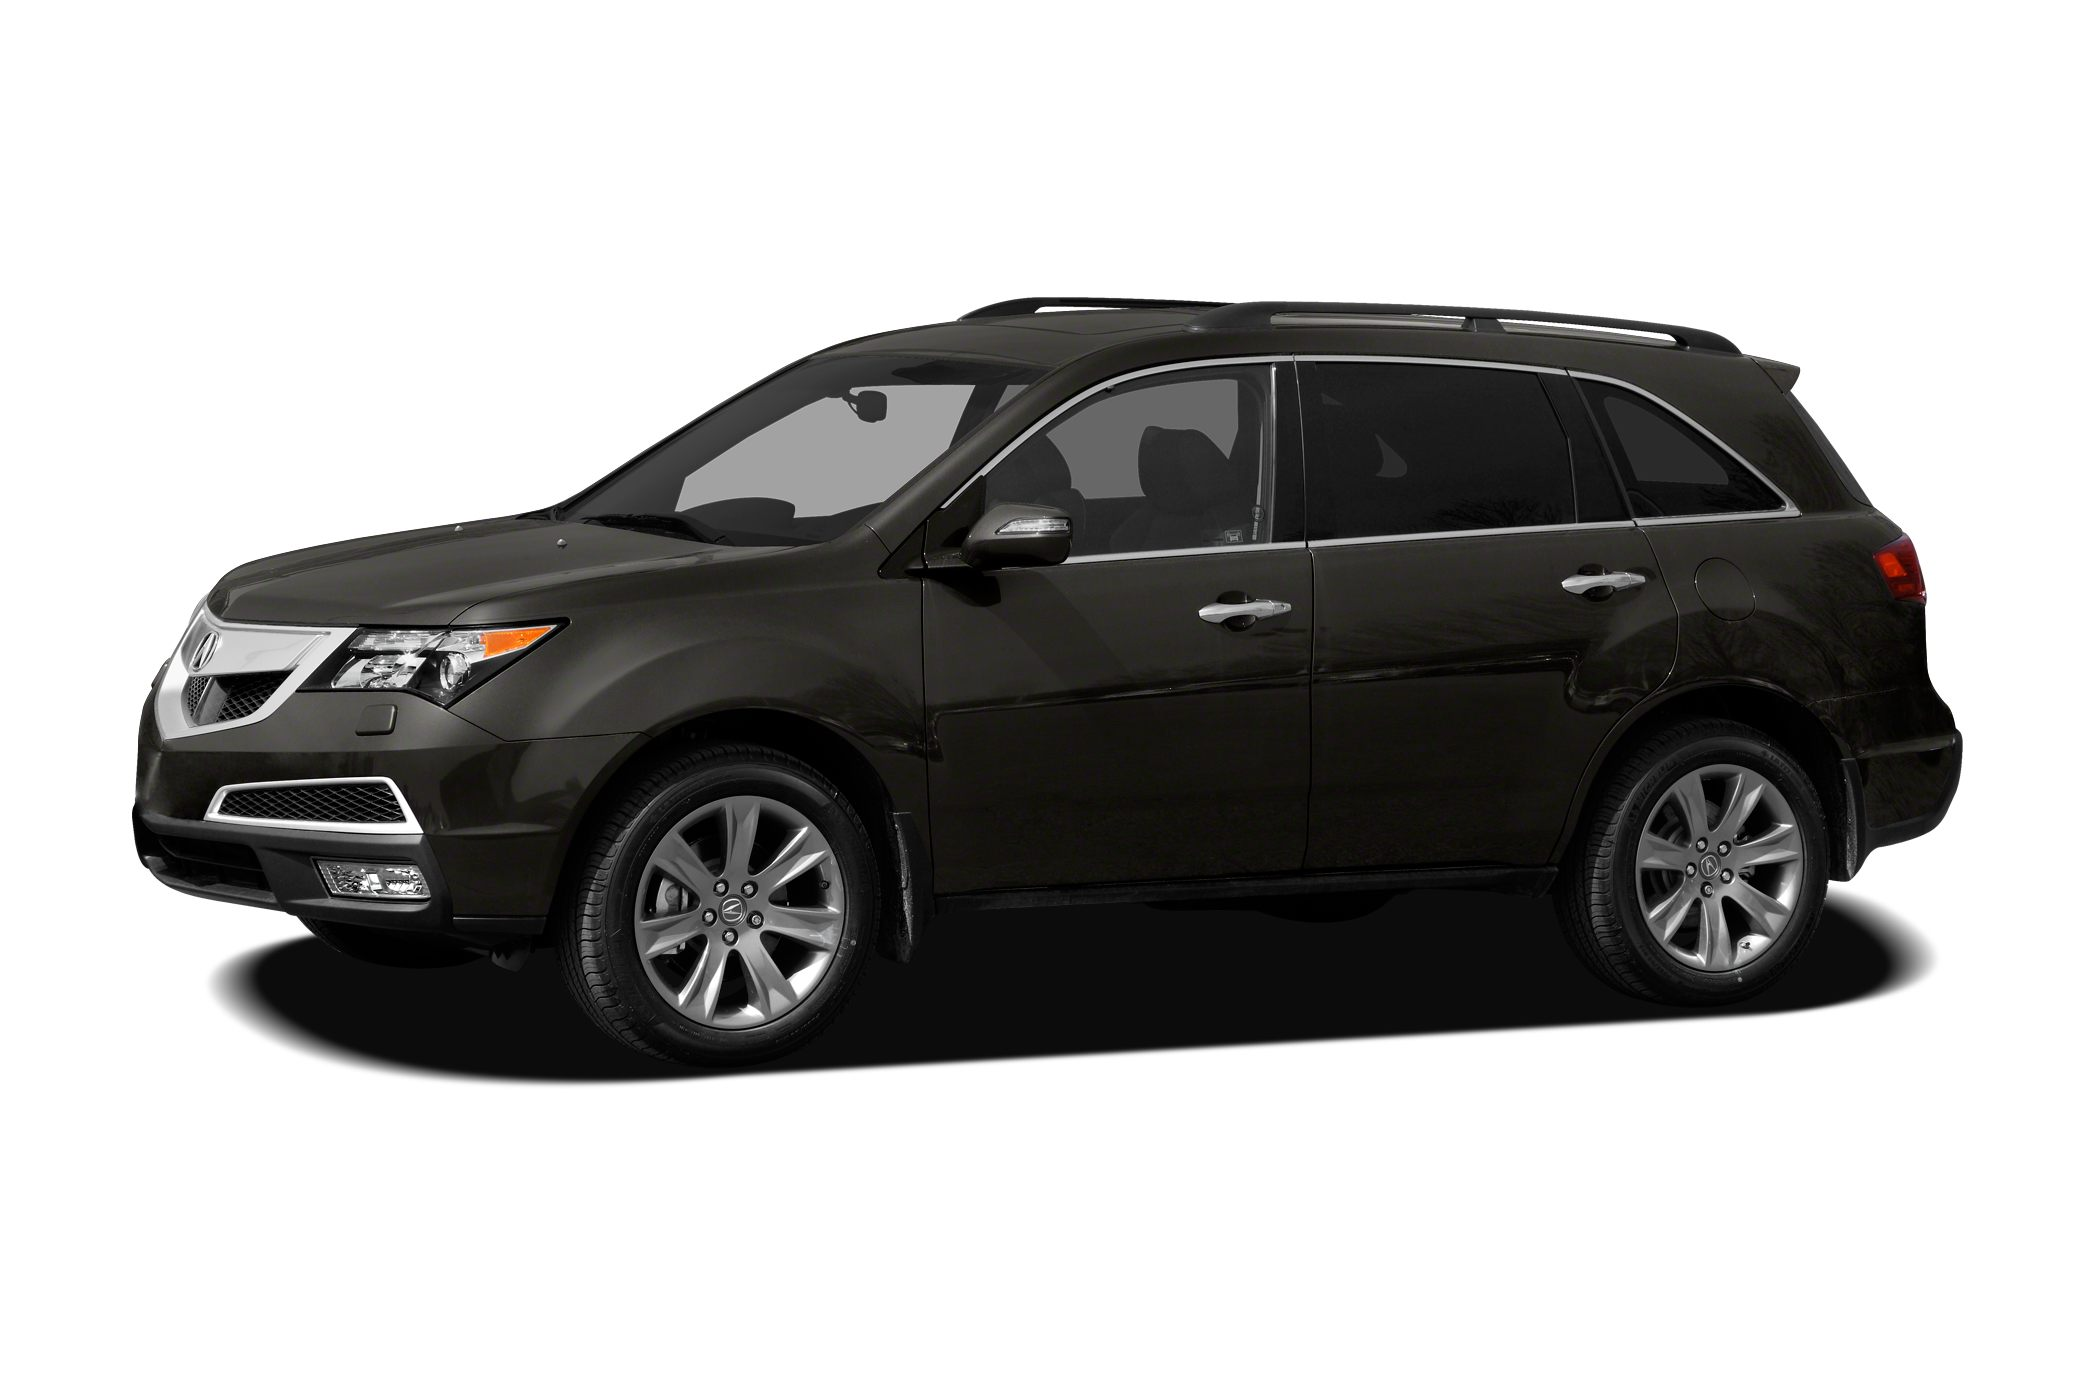 2011 Acura MDX 37 Technology Certified Vehicle New Arrival This 2011 Acura MDX Tech Pkg will